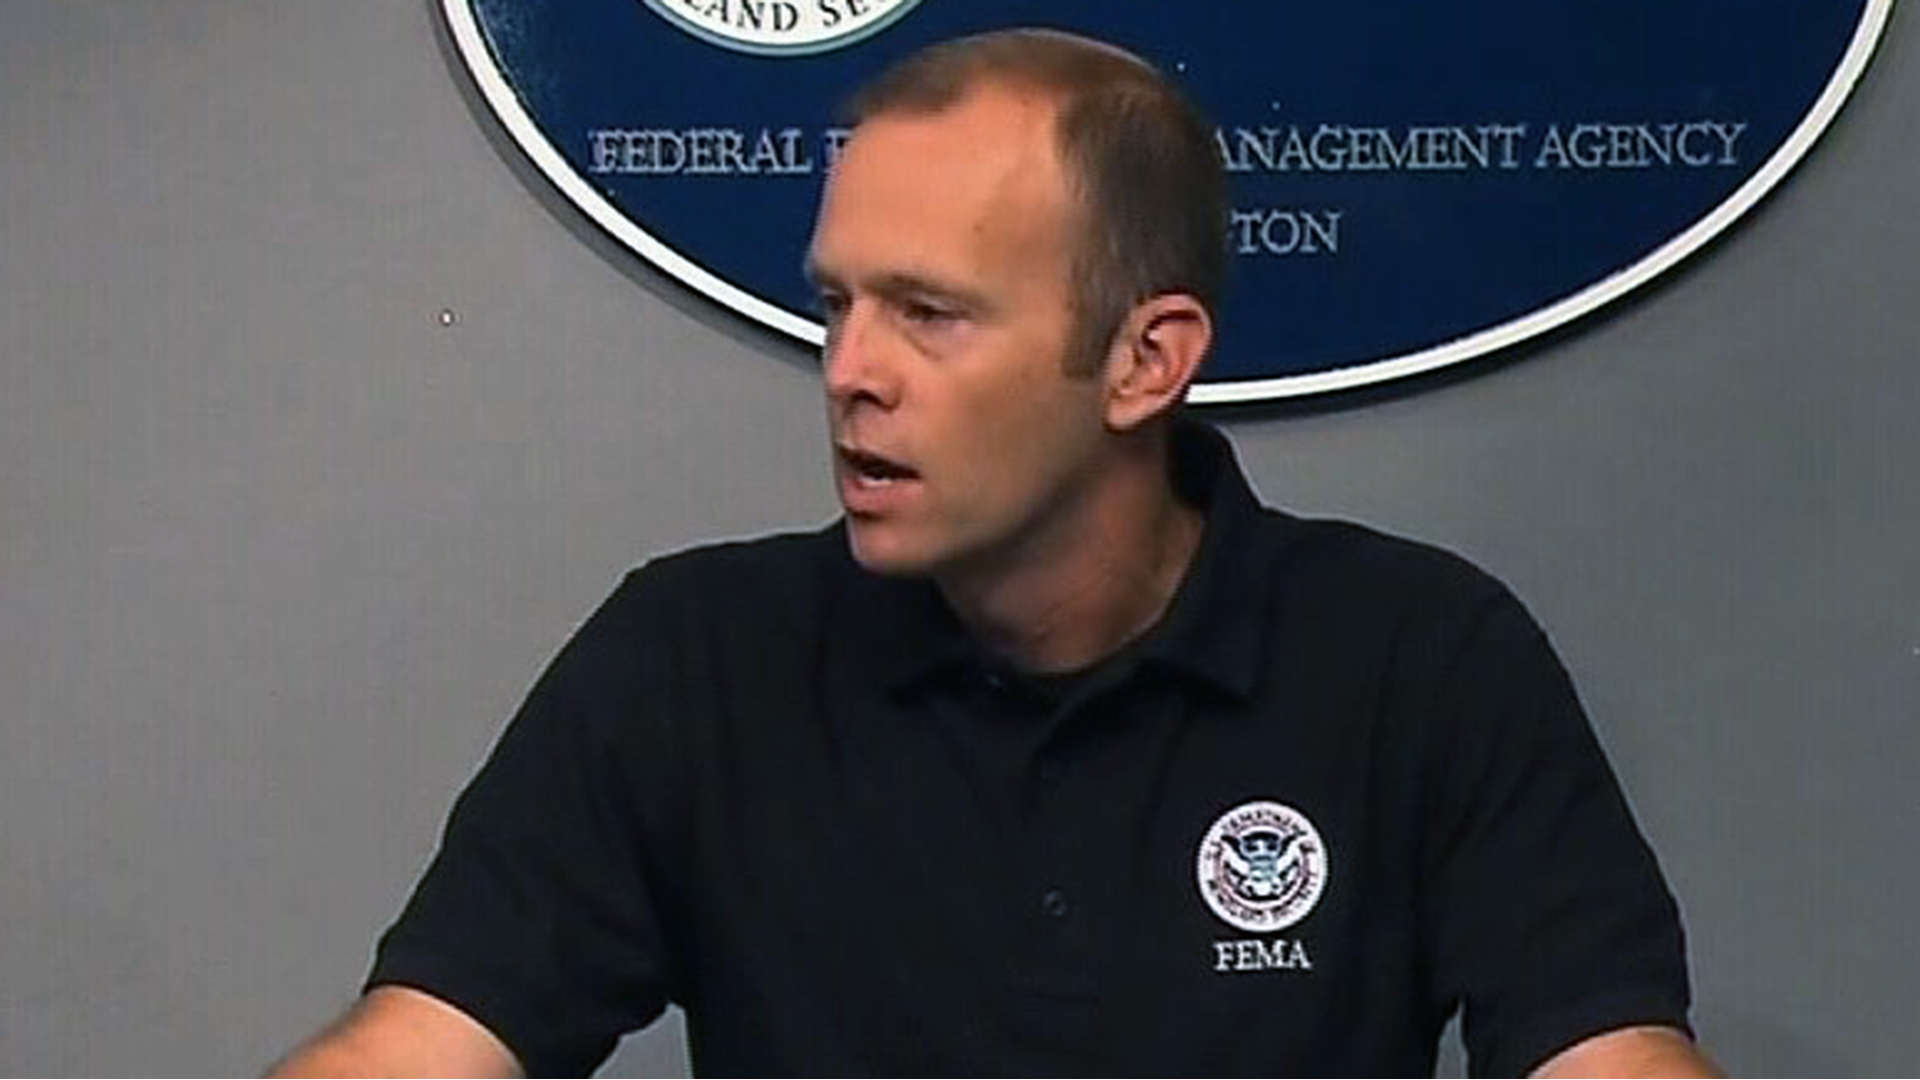 FEMA Administrator Brock Long-159532.jpg01671129